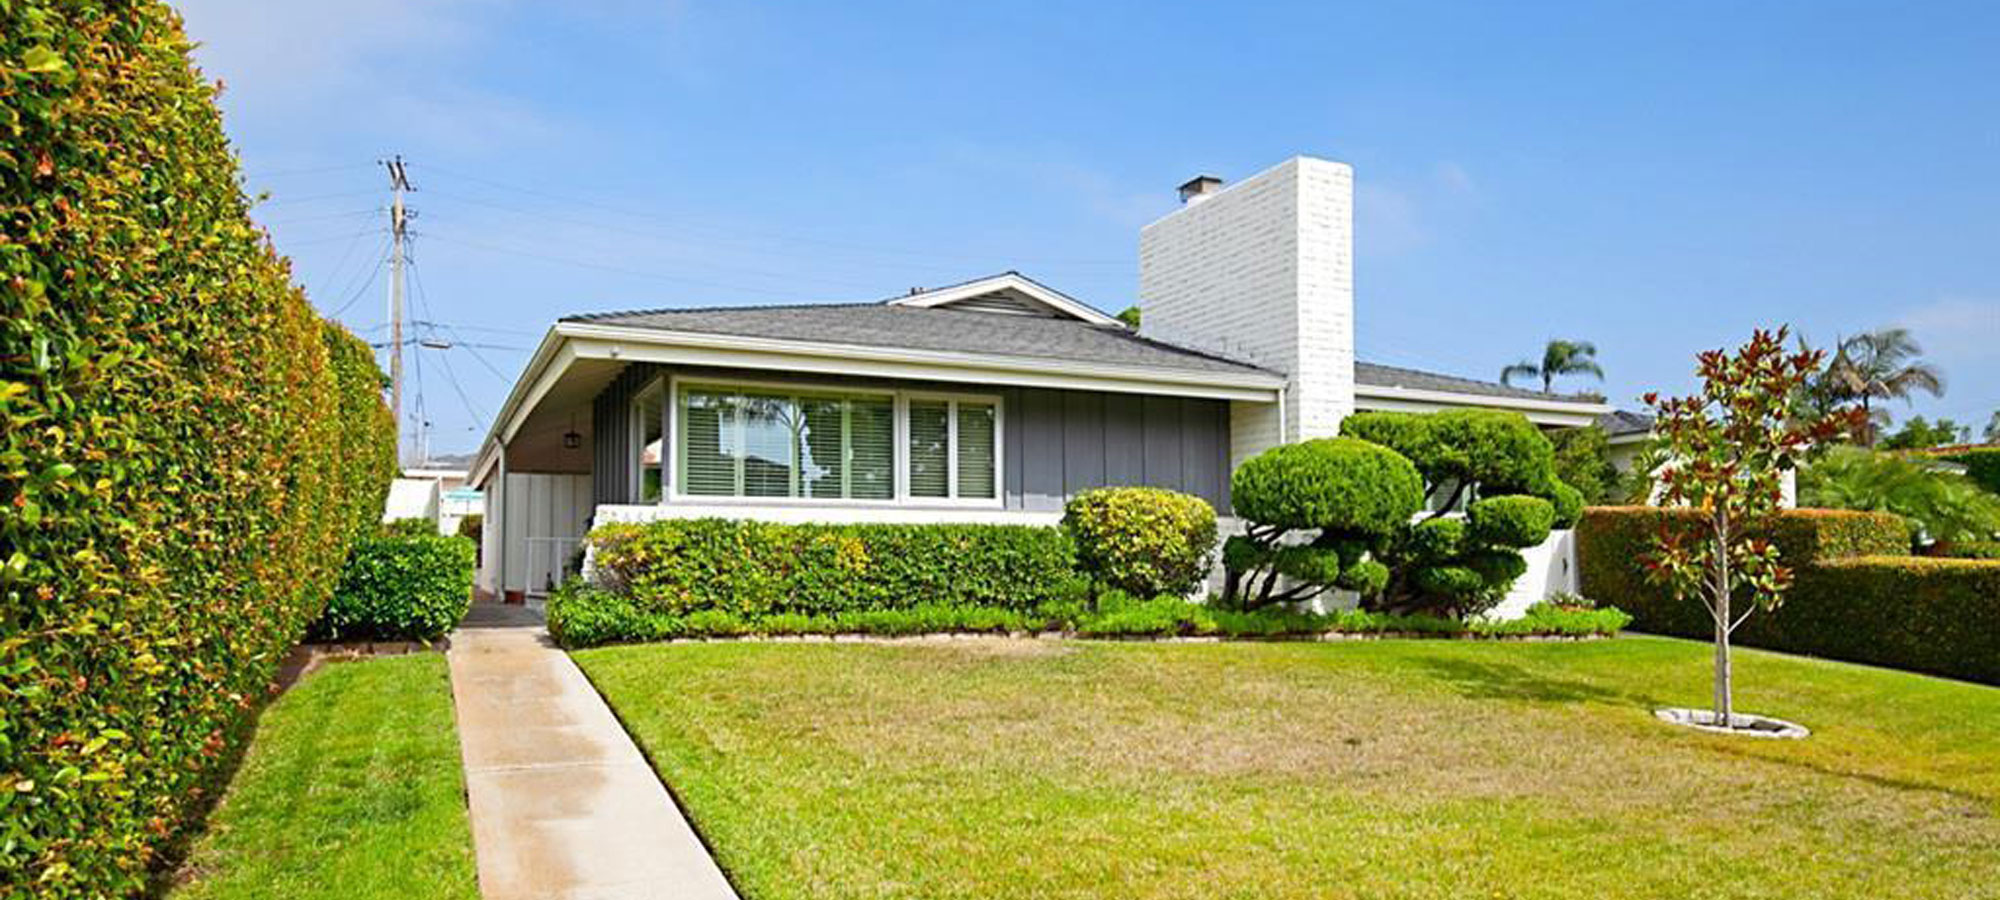 2664 Narcissus Dr San Diego, CA 92106